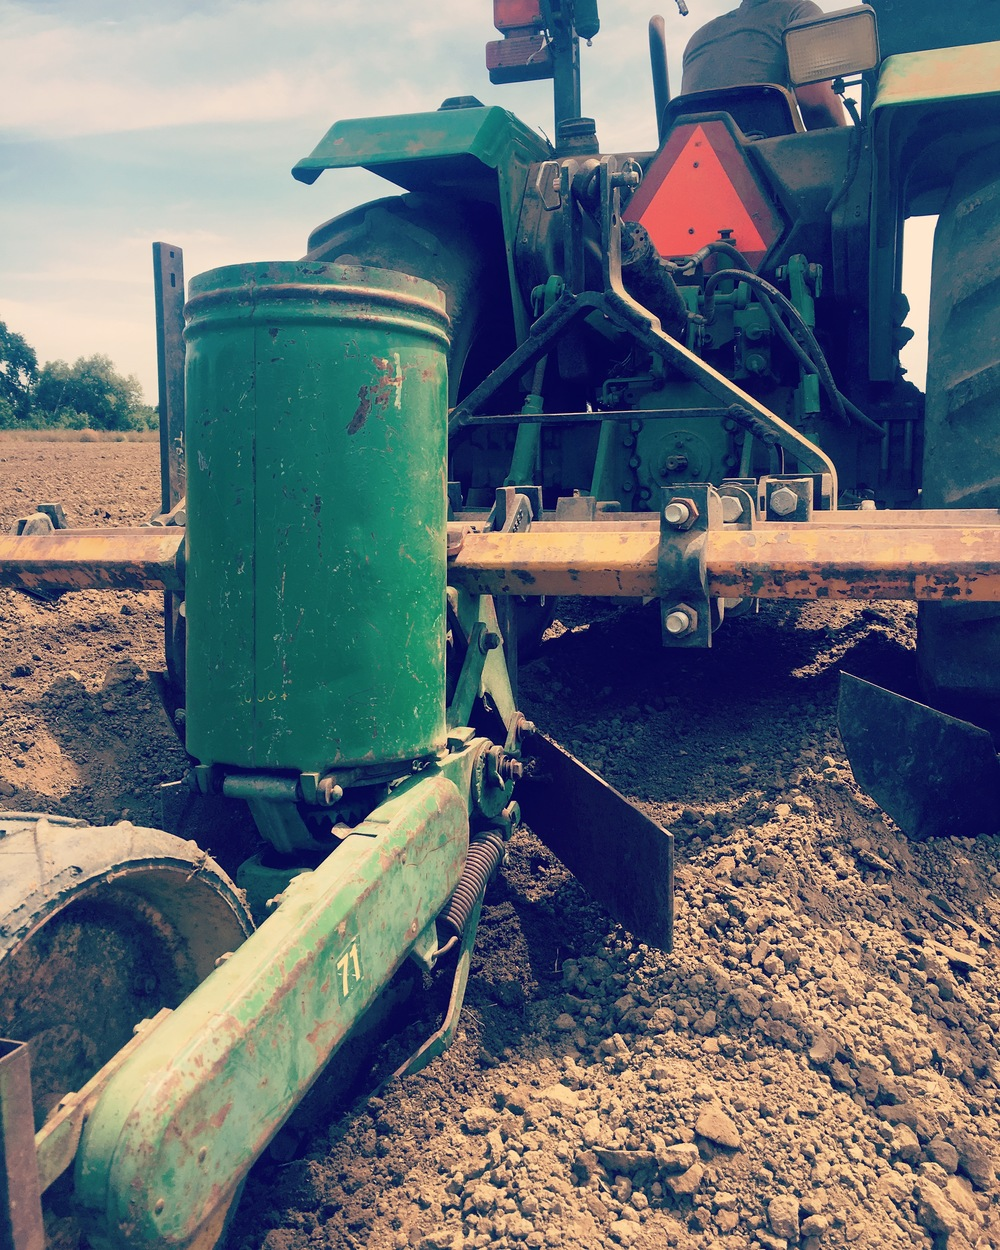 Old school technology still relevant! Using a John Deere 71 planter to sow winter squash.